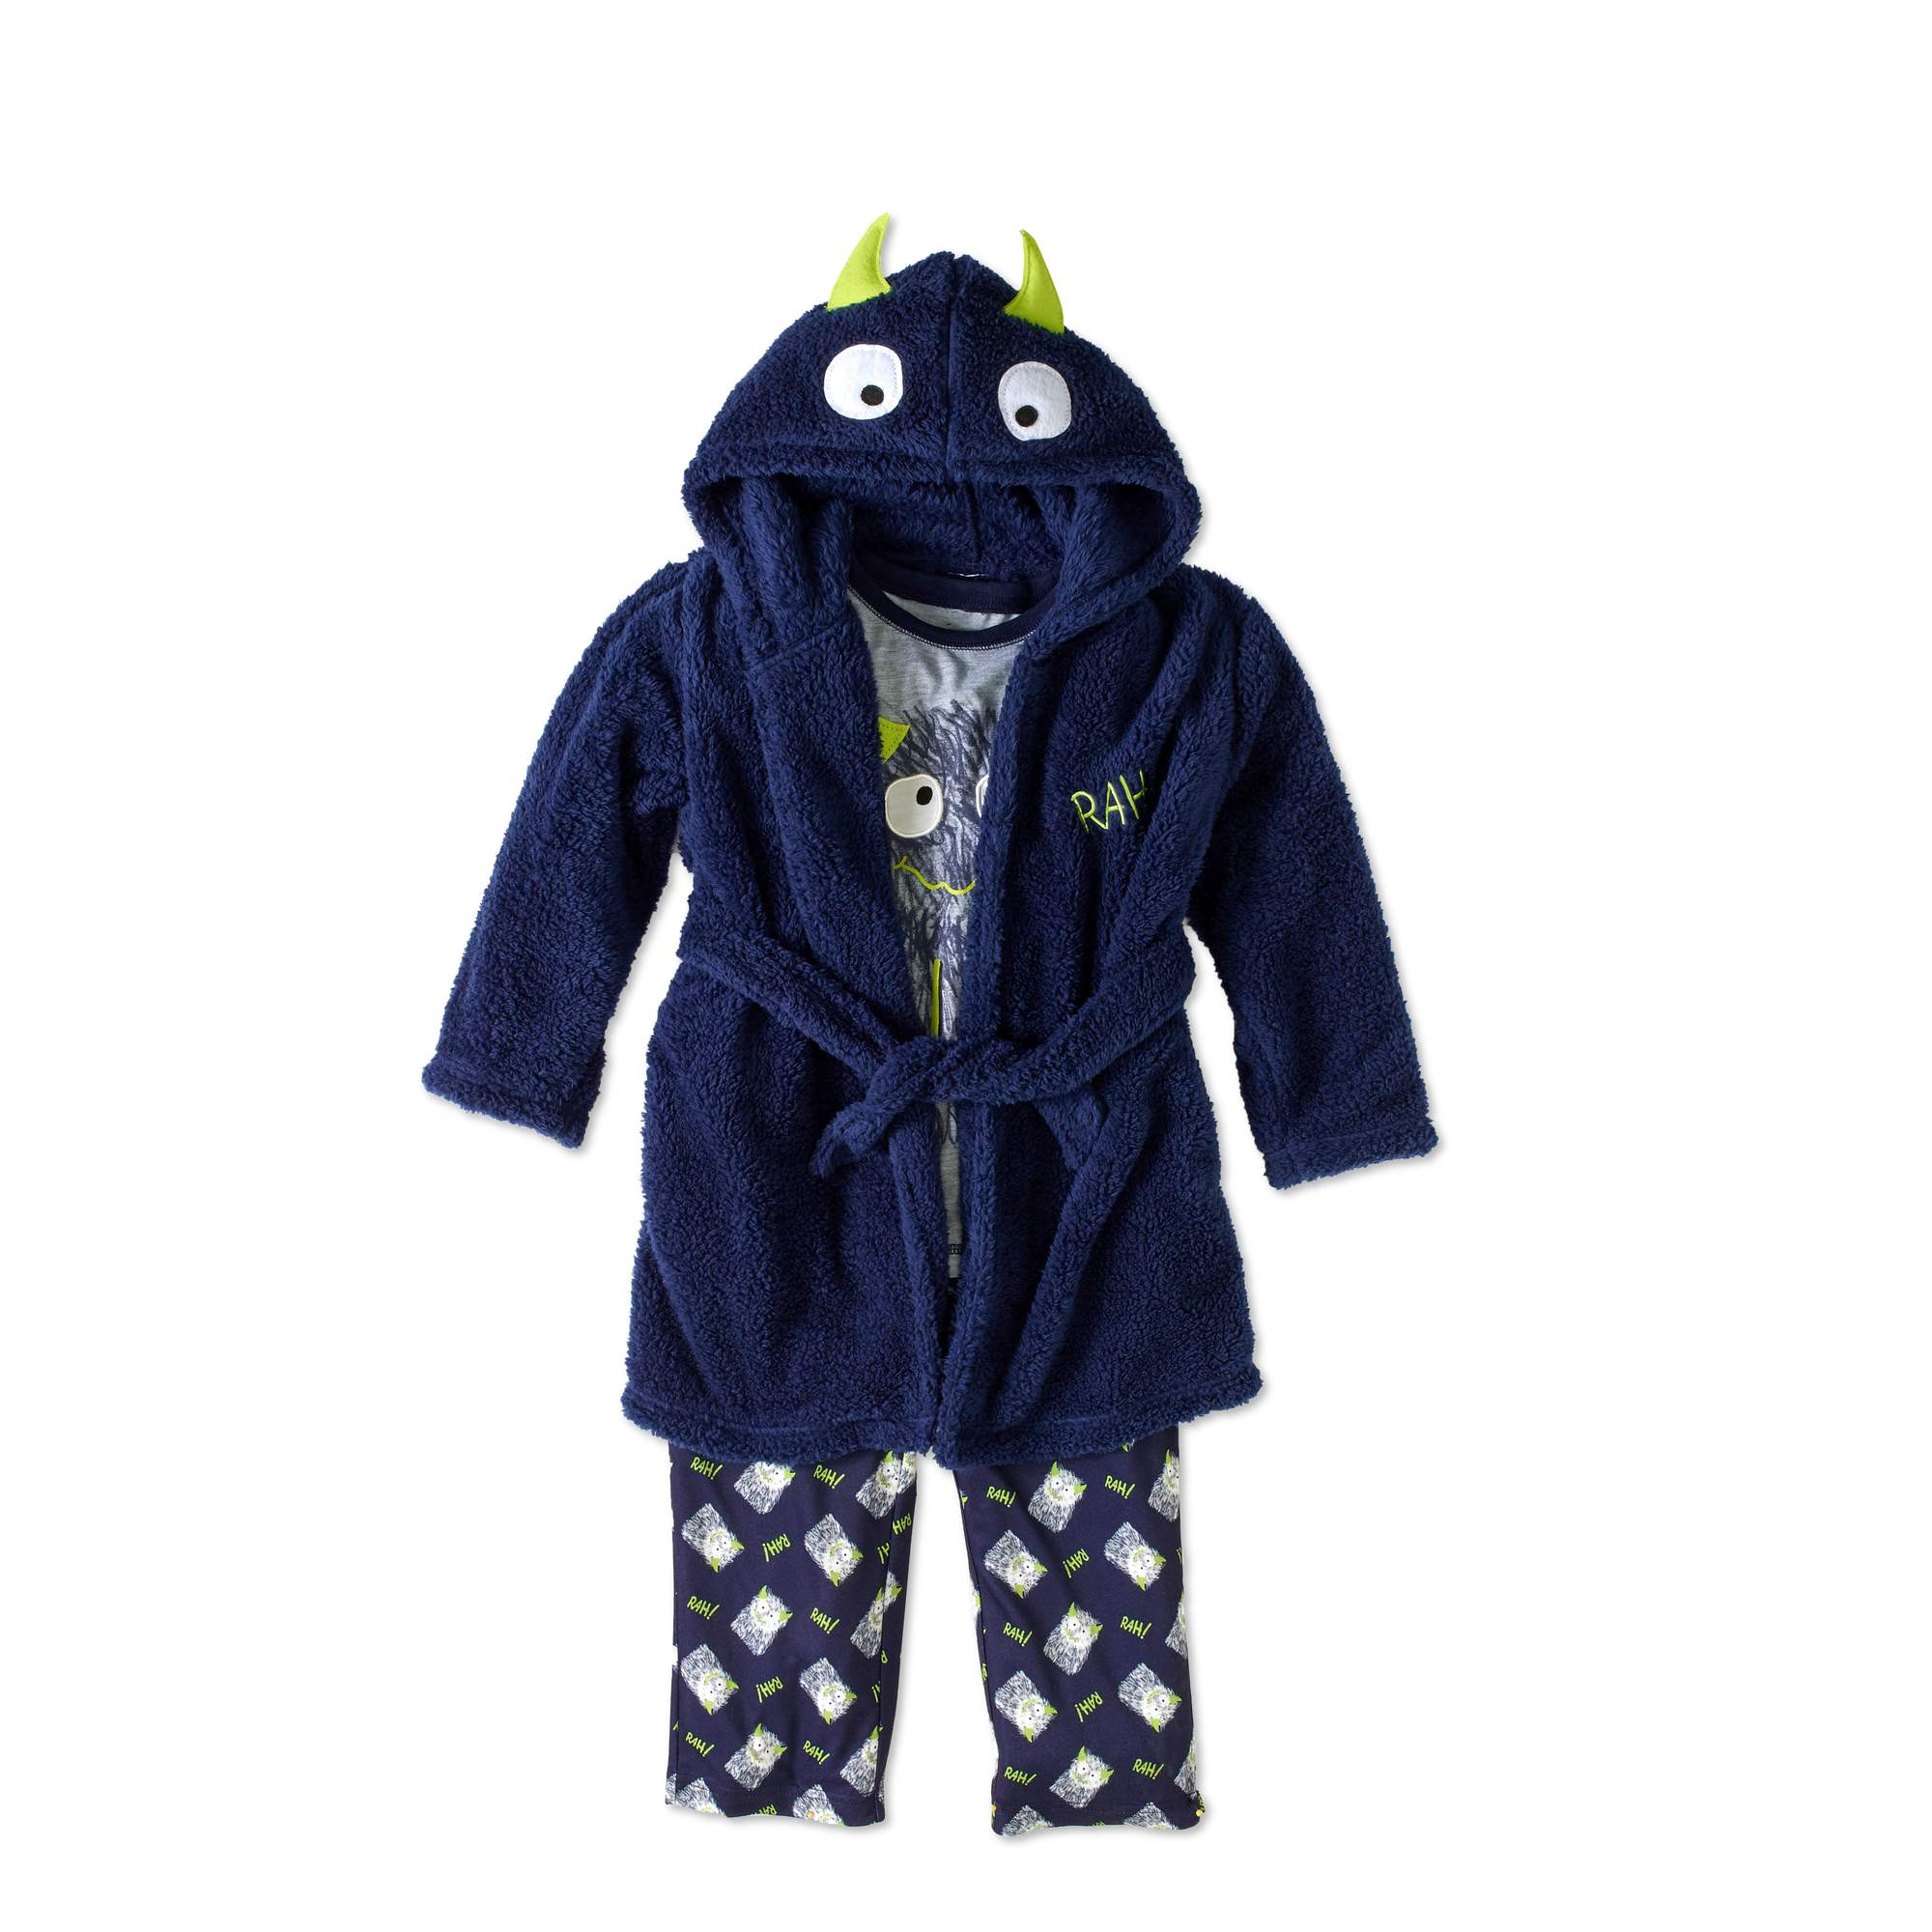 Bunz Kidz Boys' Monster Plush Robe And Sleepwear 3Pc Set